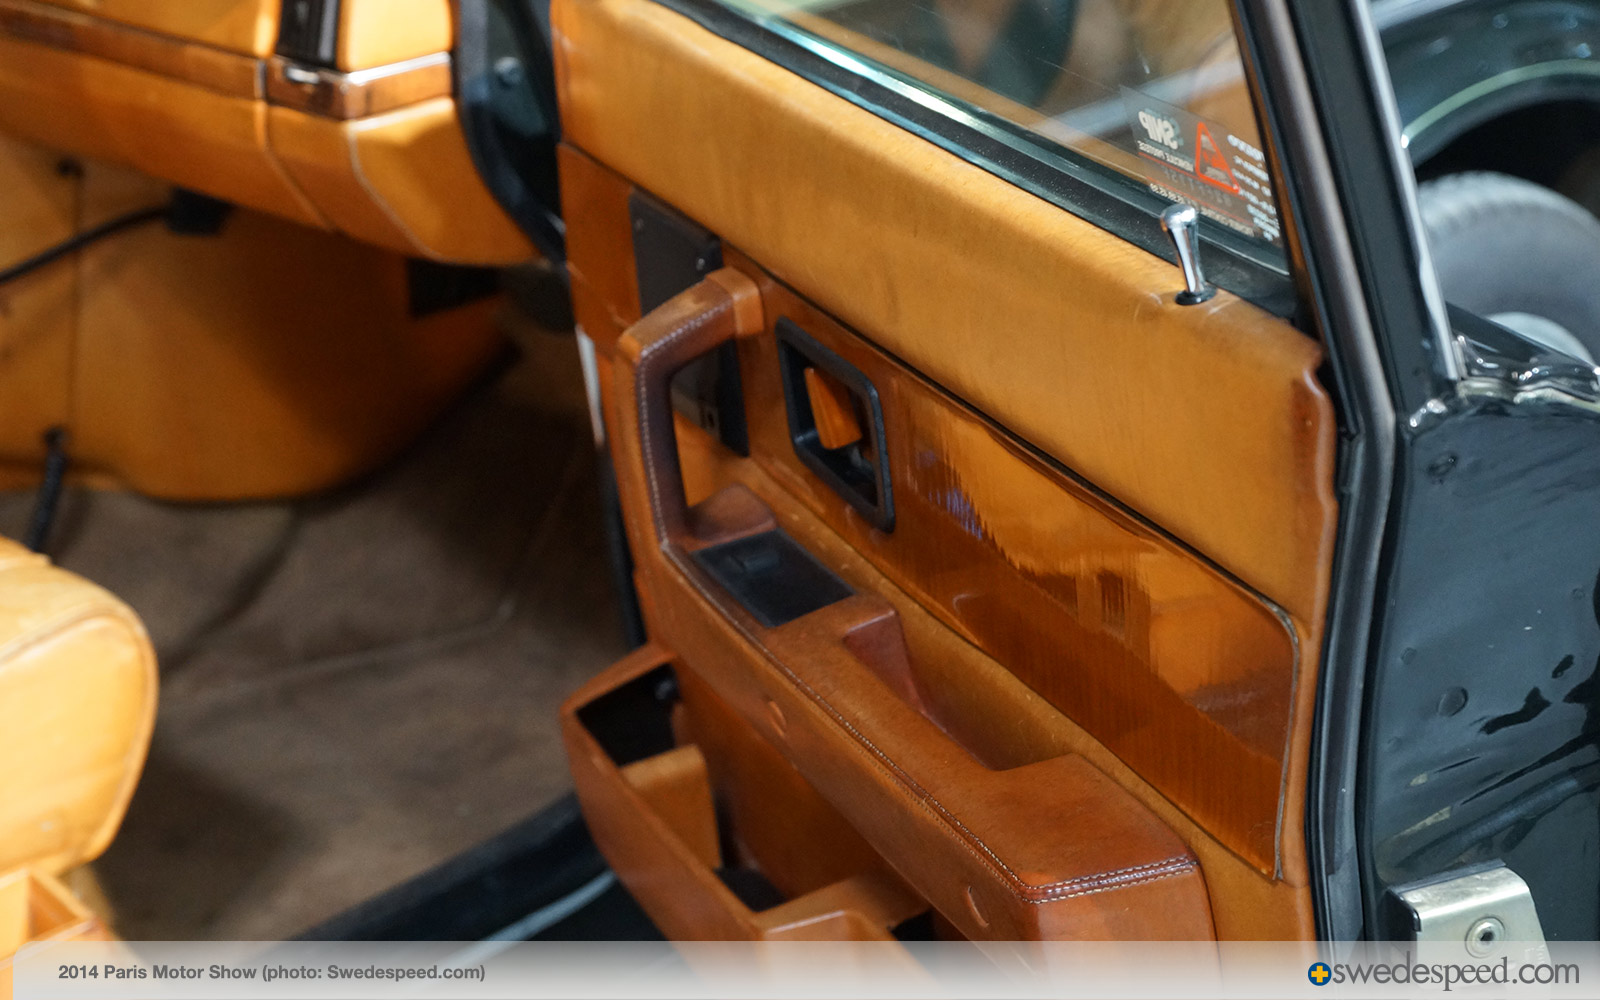 Ex Hermes 1984 Volvo 240 Turbo Wagon Part Of Cars Fashion Display In Paris Swedespeed Volvo Performance Forum